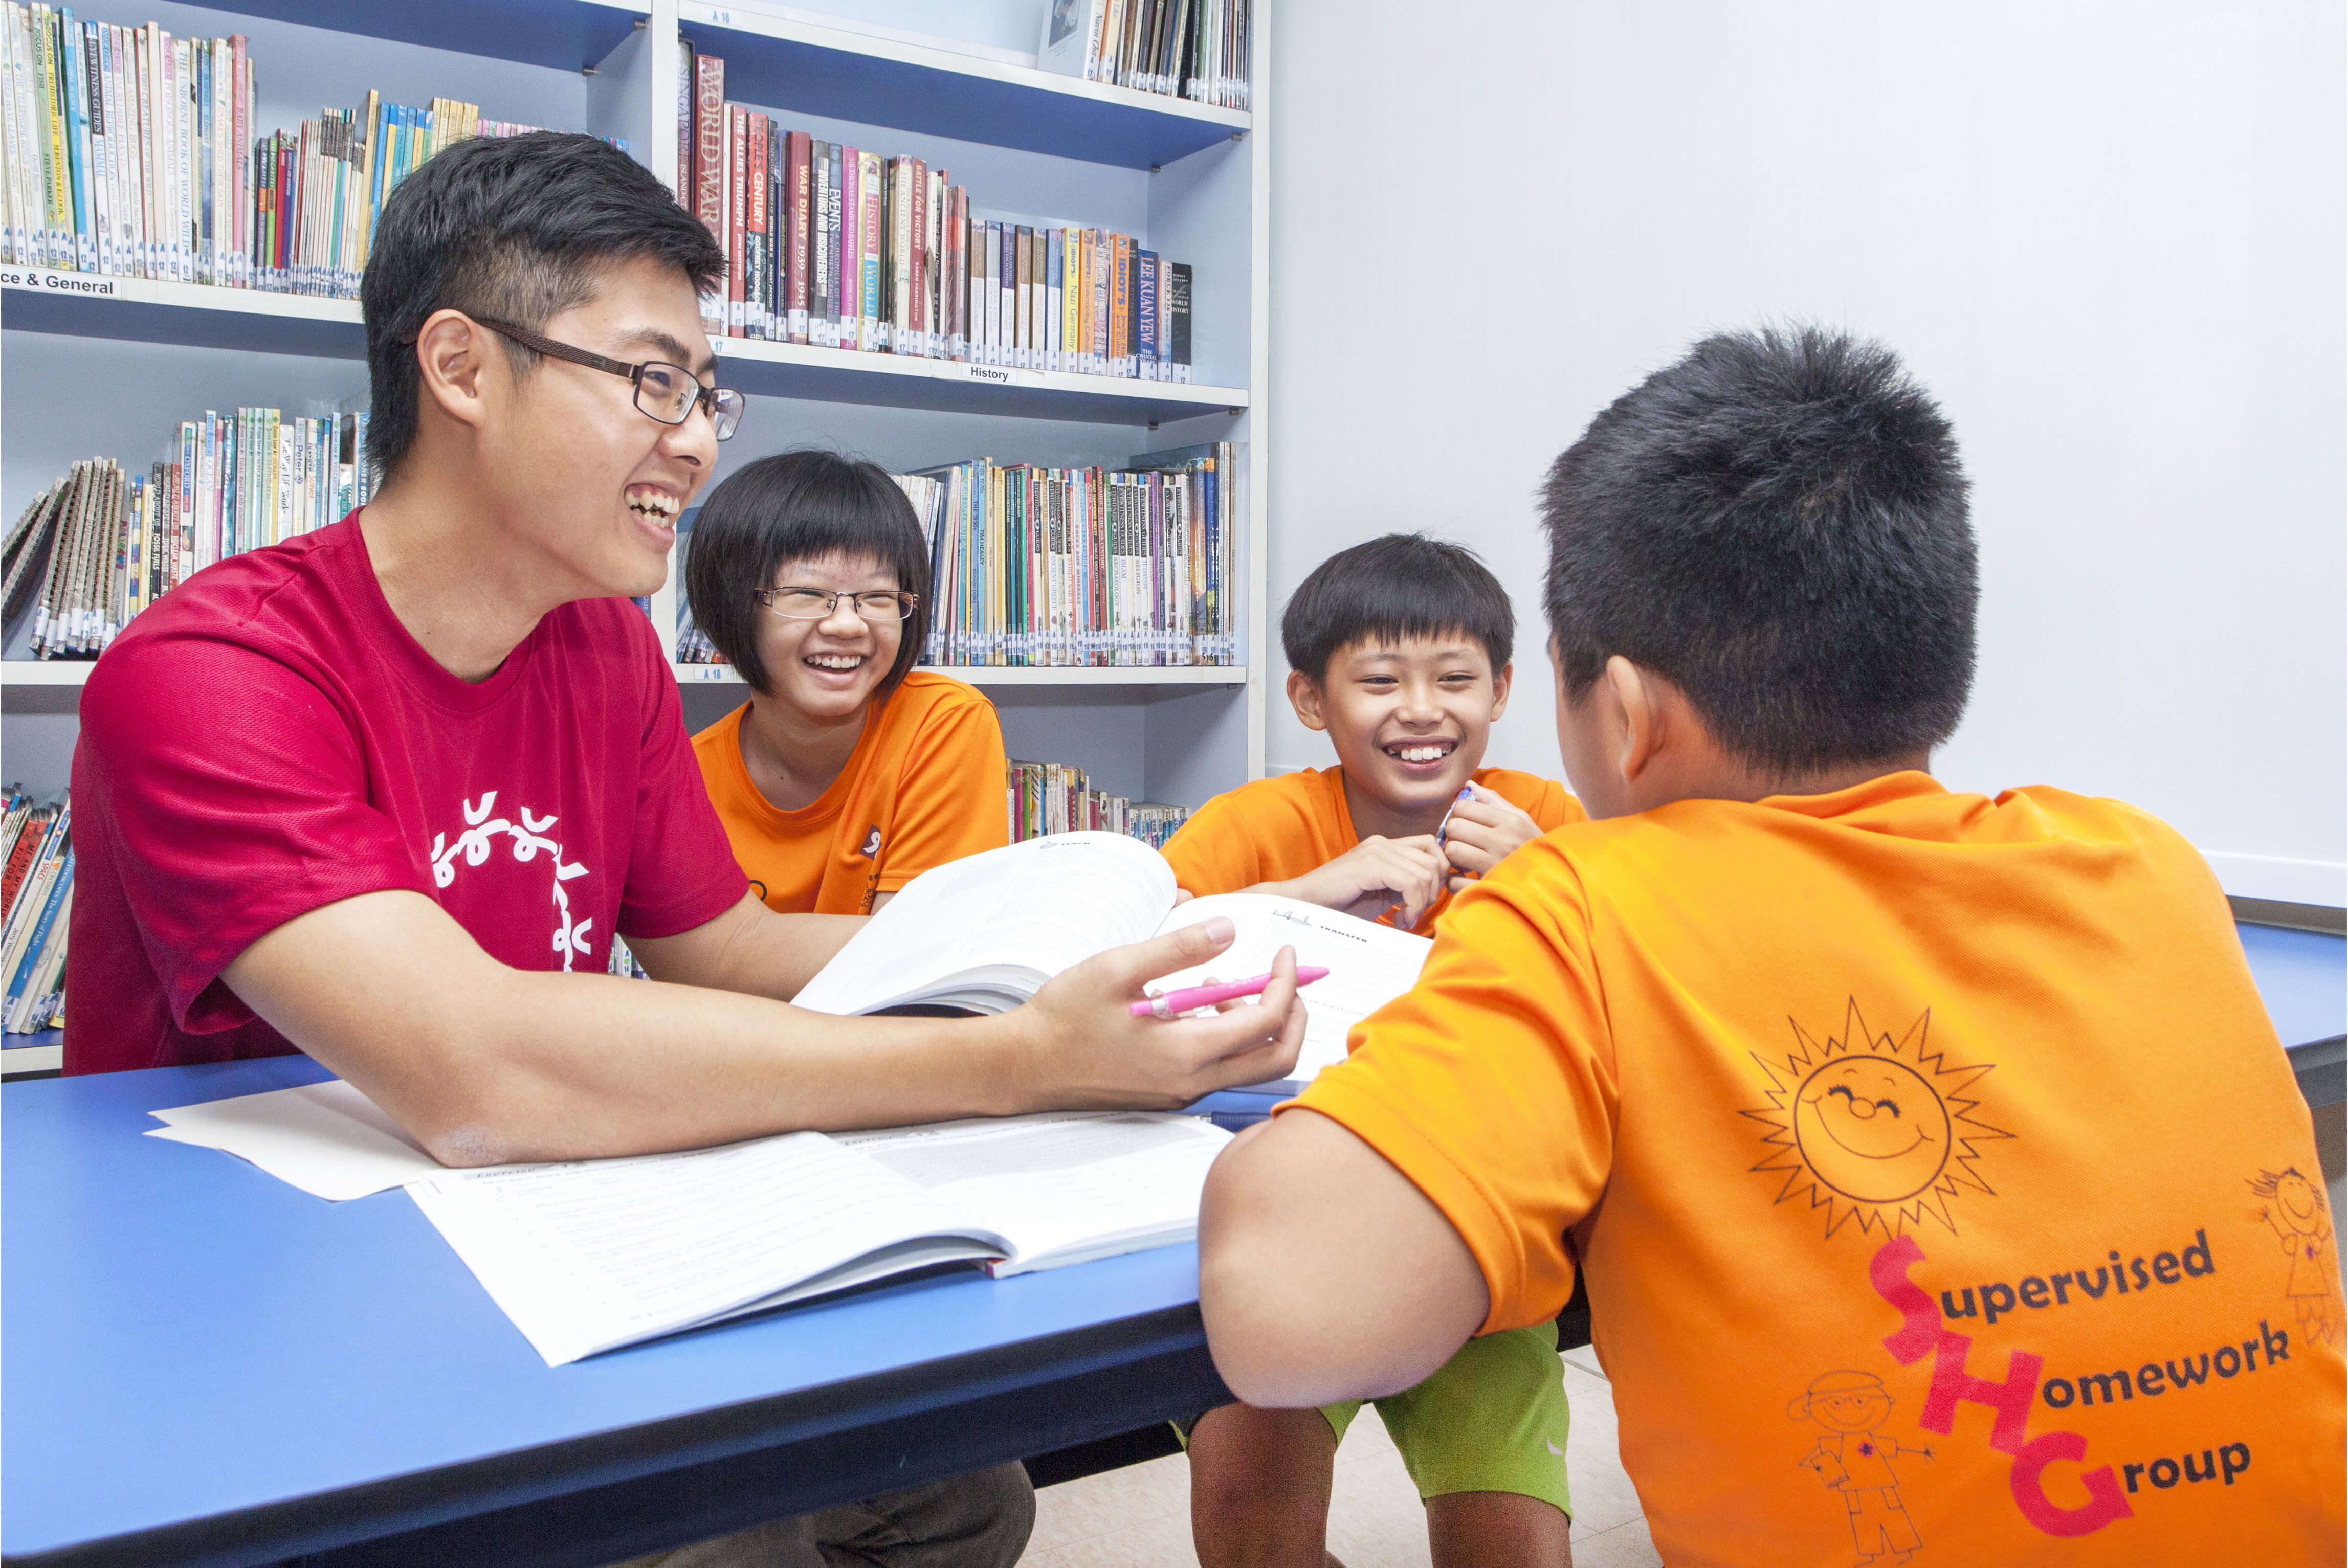 cdac supervised homework group